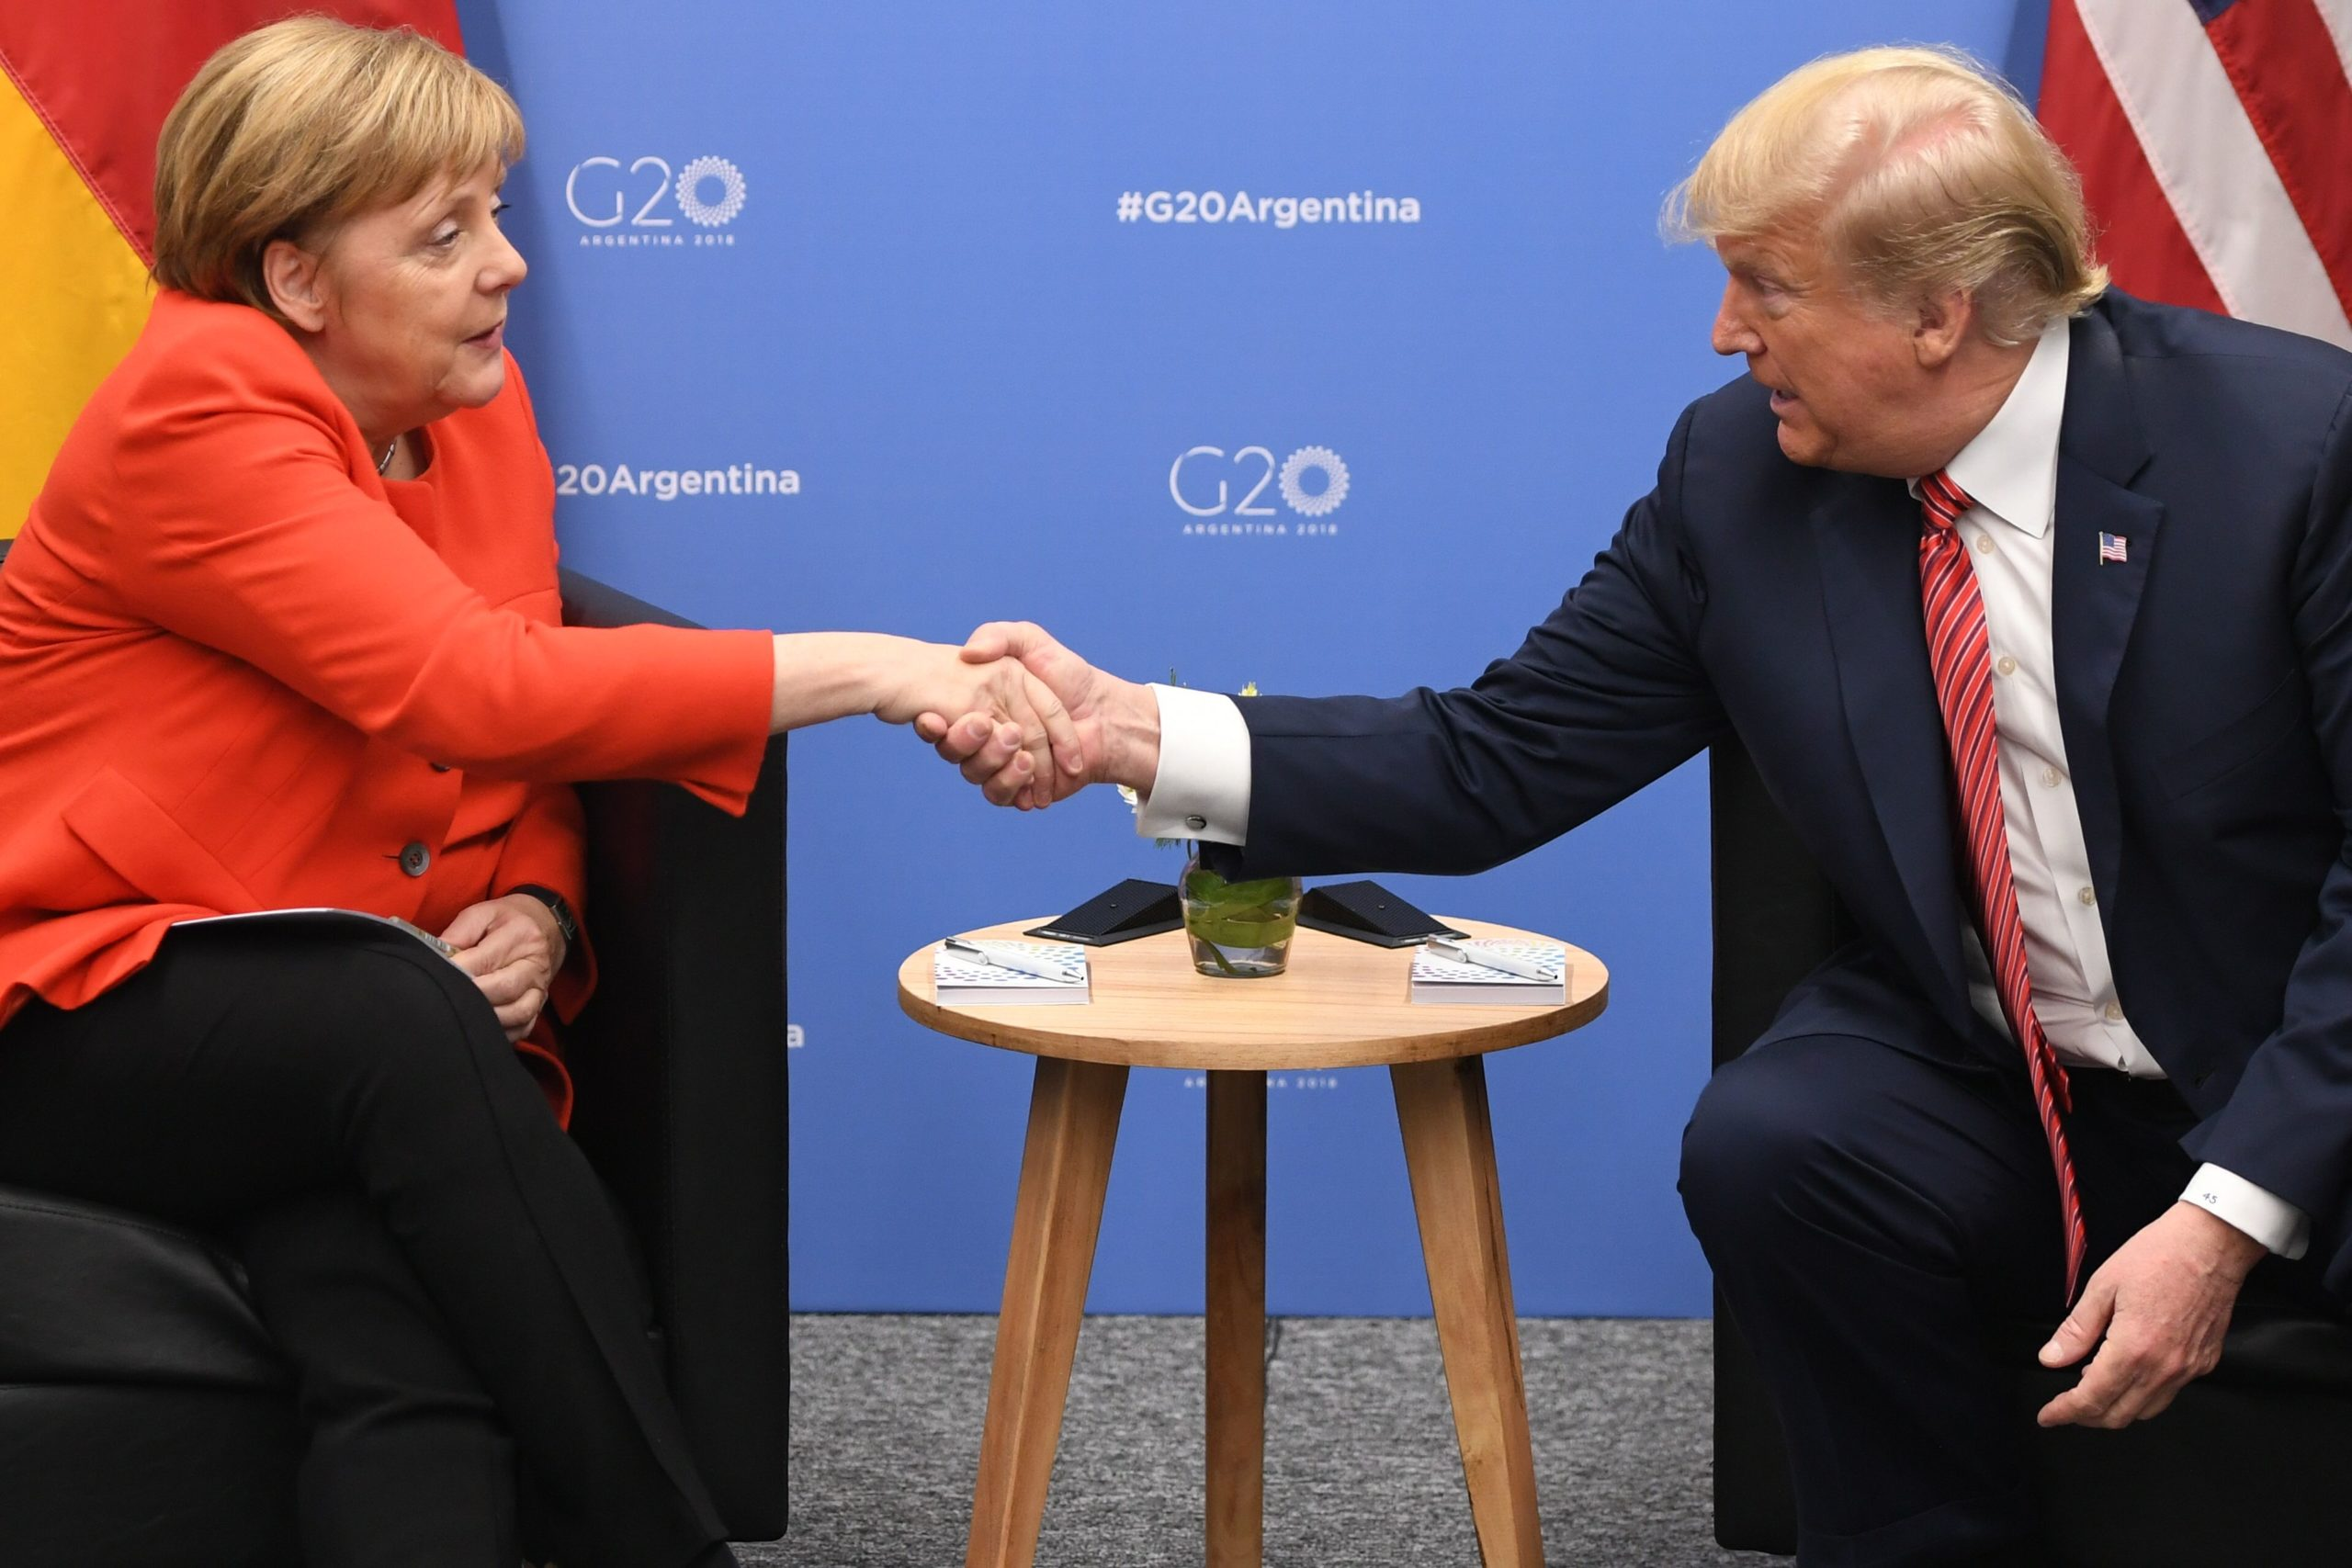 President Trump and Chancellor Merkel shaking hands at G20 summit in December 2018.